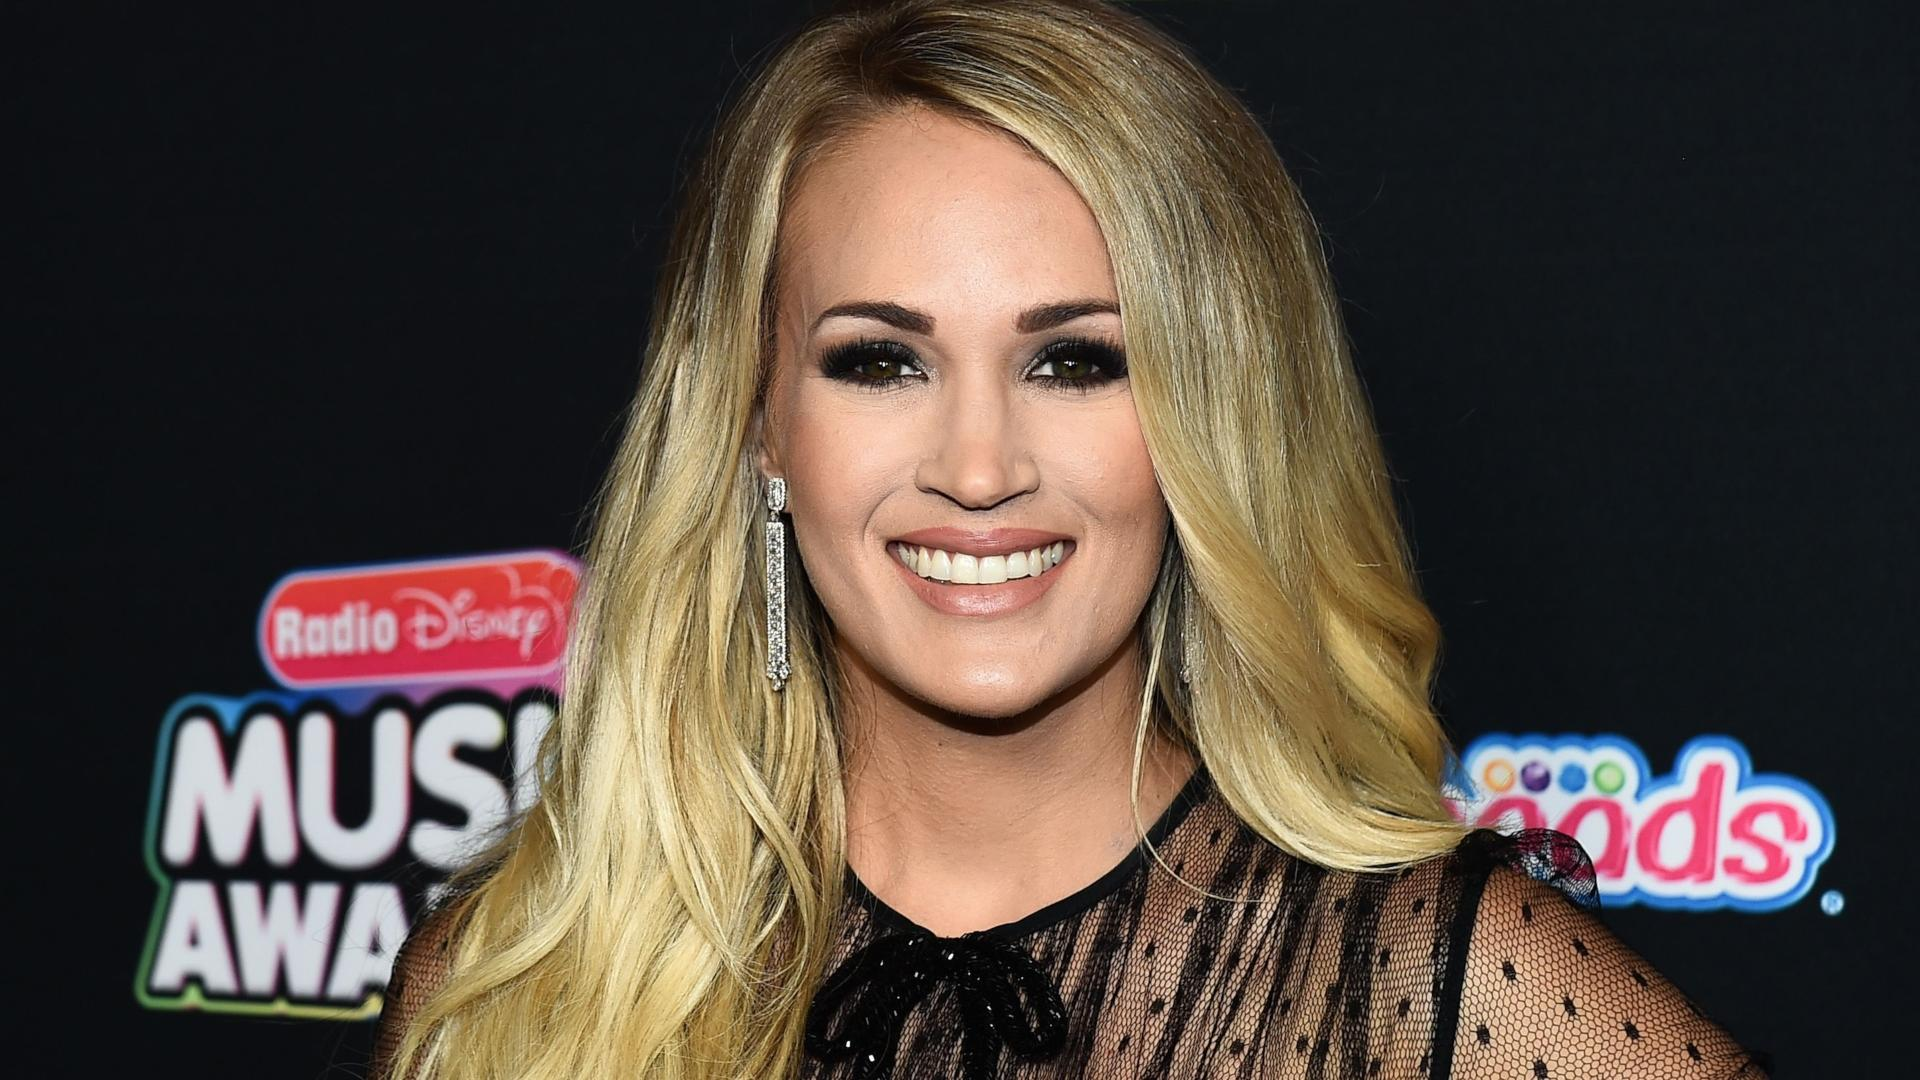 Carrie Underwood Hilariously Reminisces On 14th Anniversary Of Her